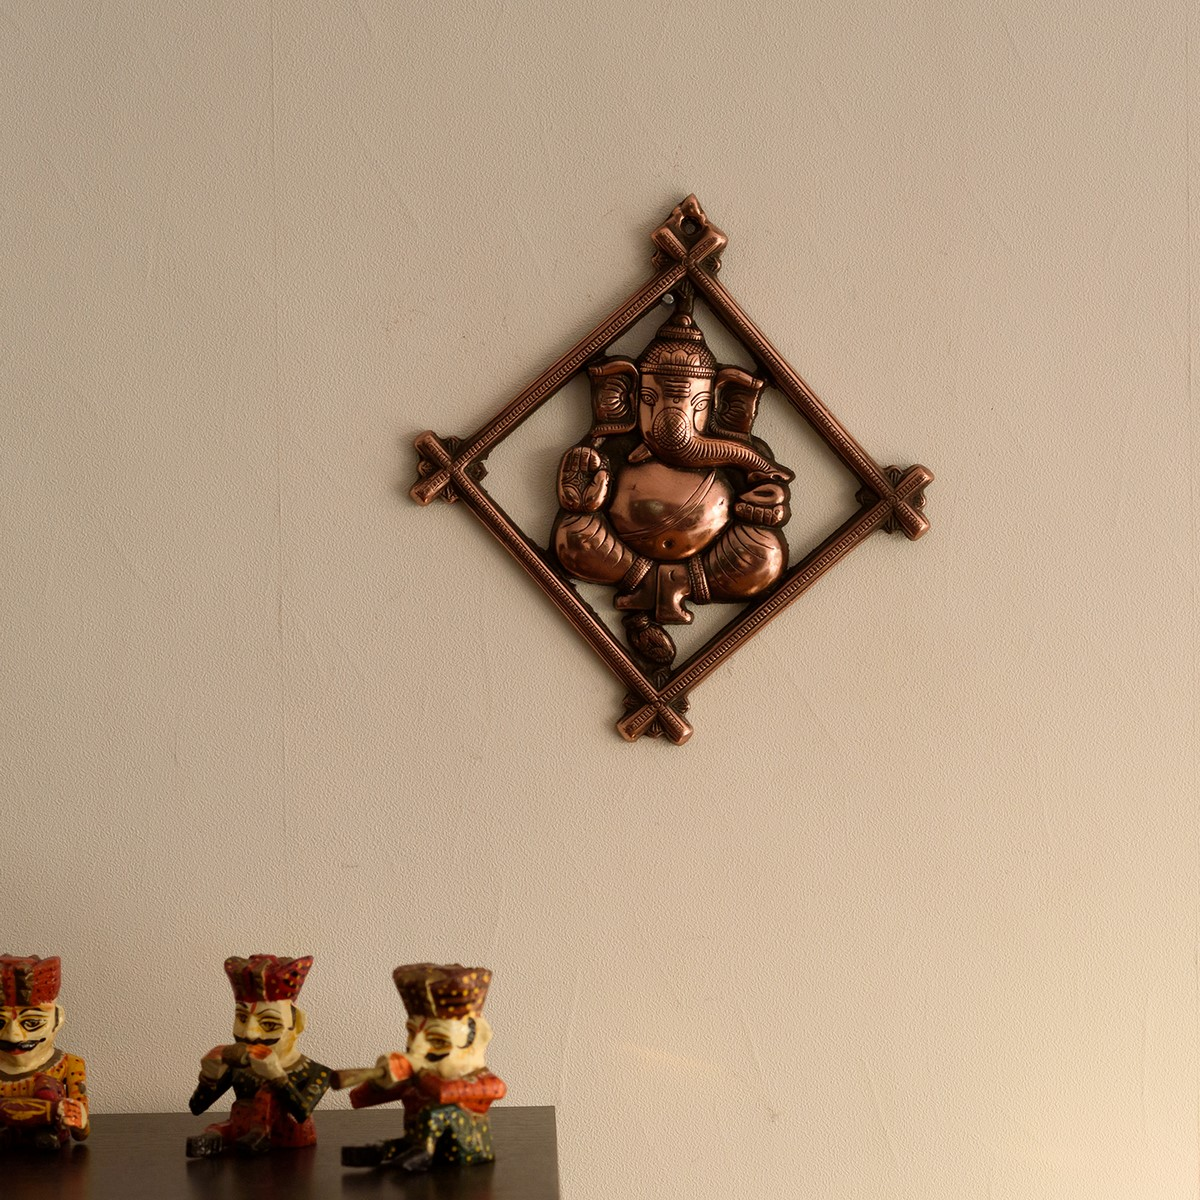 Lord Ganesha on Rhombus Frame Metal Wall Hanging Indian Home Decor